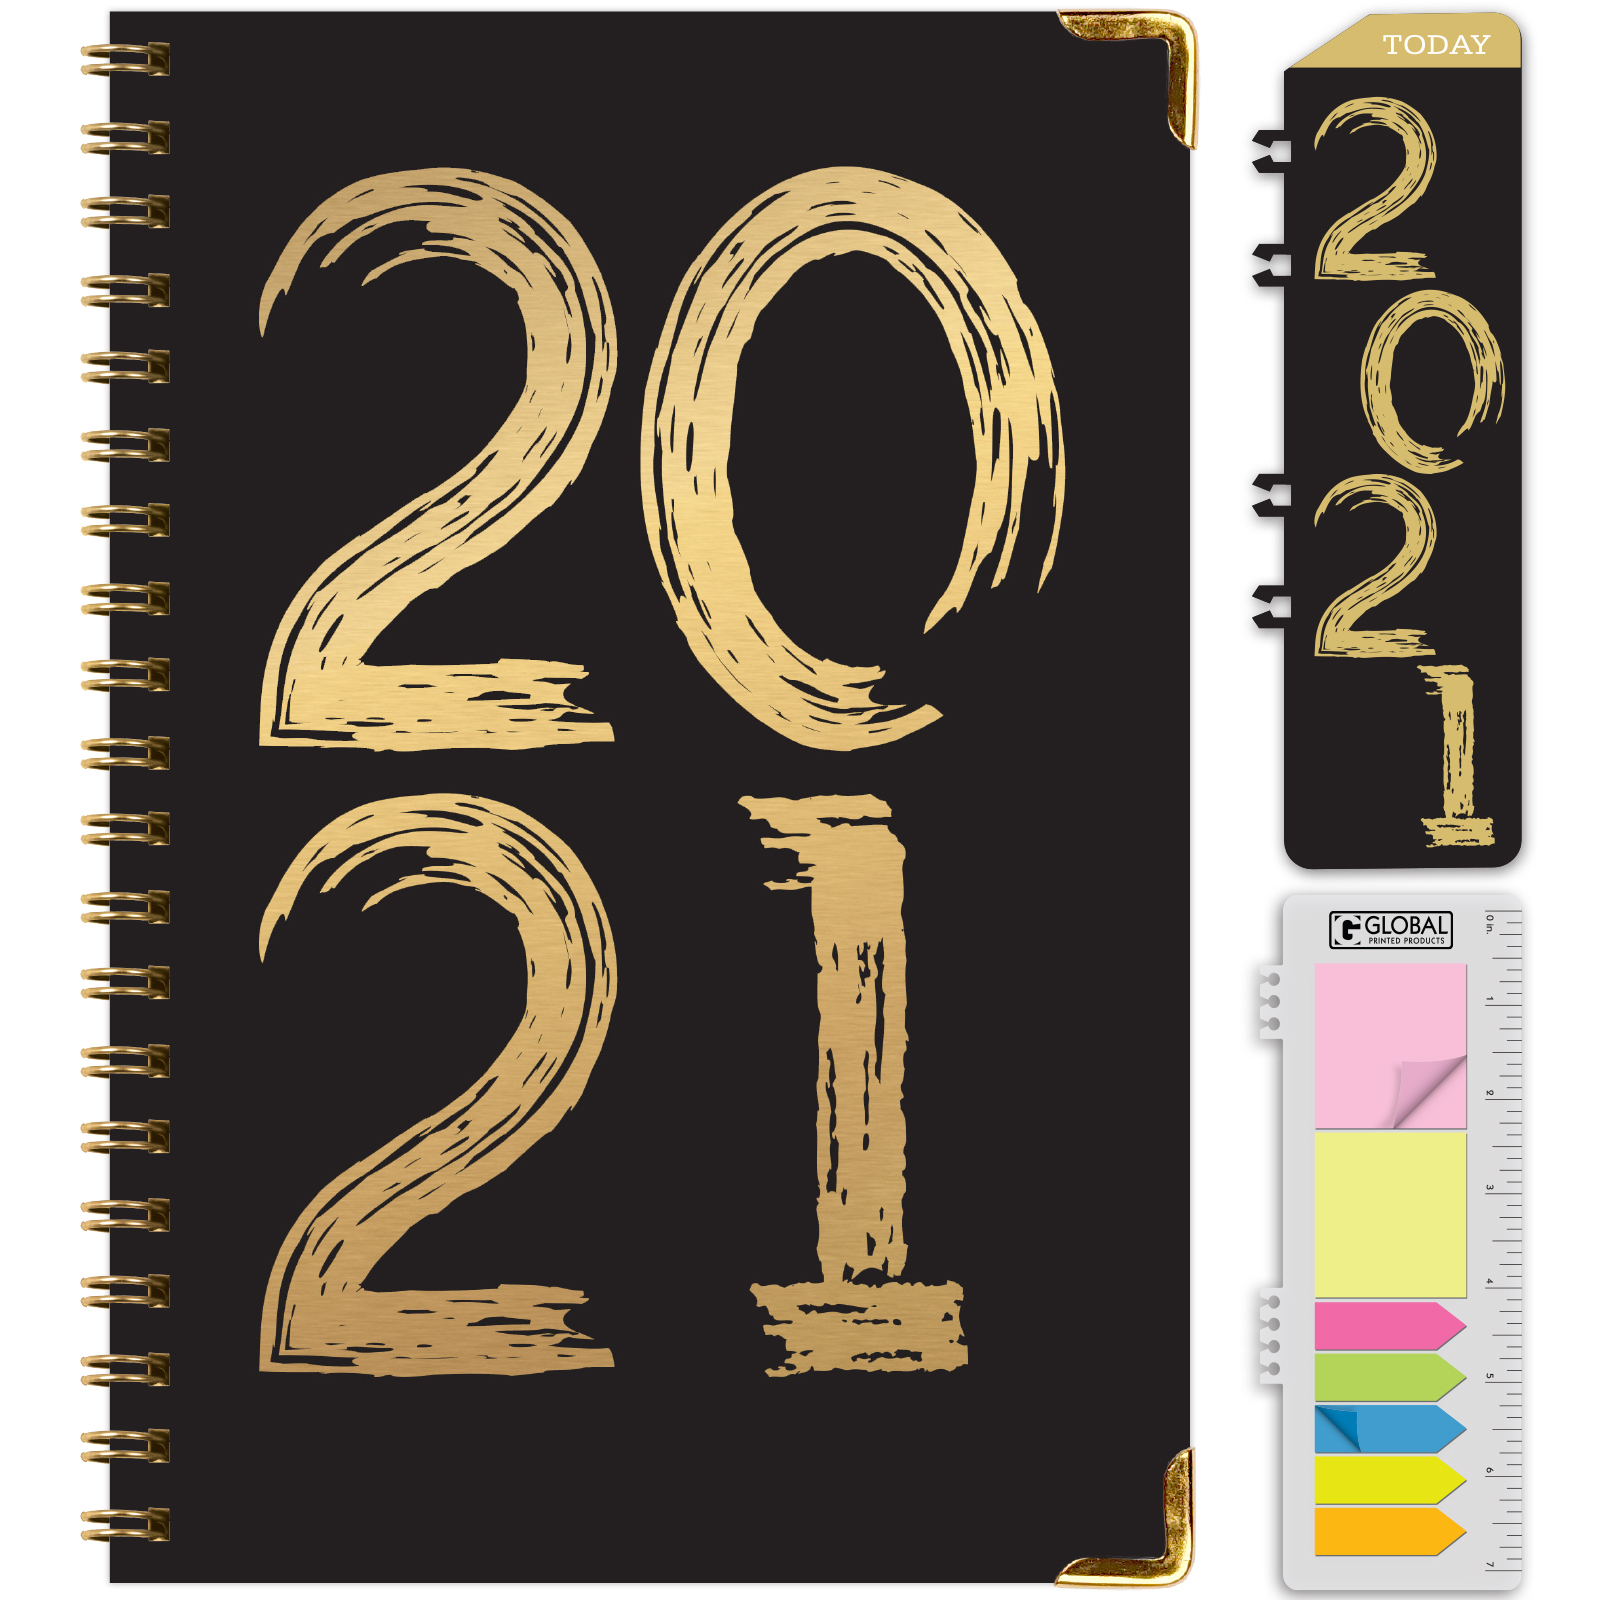 Hardcover 2021 Planner - (Nov 2020 - Dec 2021) Daily Weekly Monthly Planner  Yearly Agenda. Bonus Bookmark Pocket Folder And Sticky Note Set -